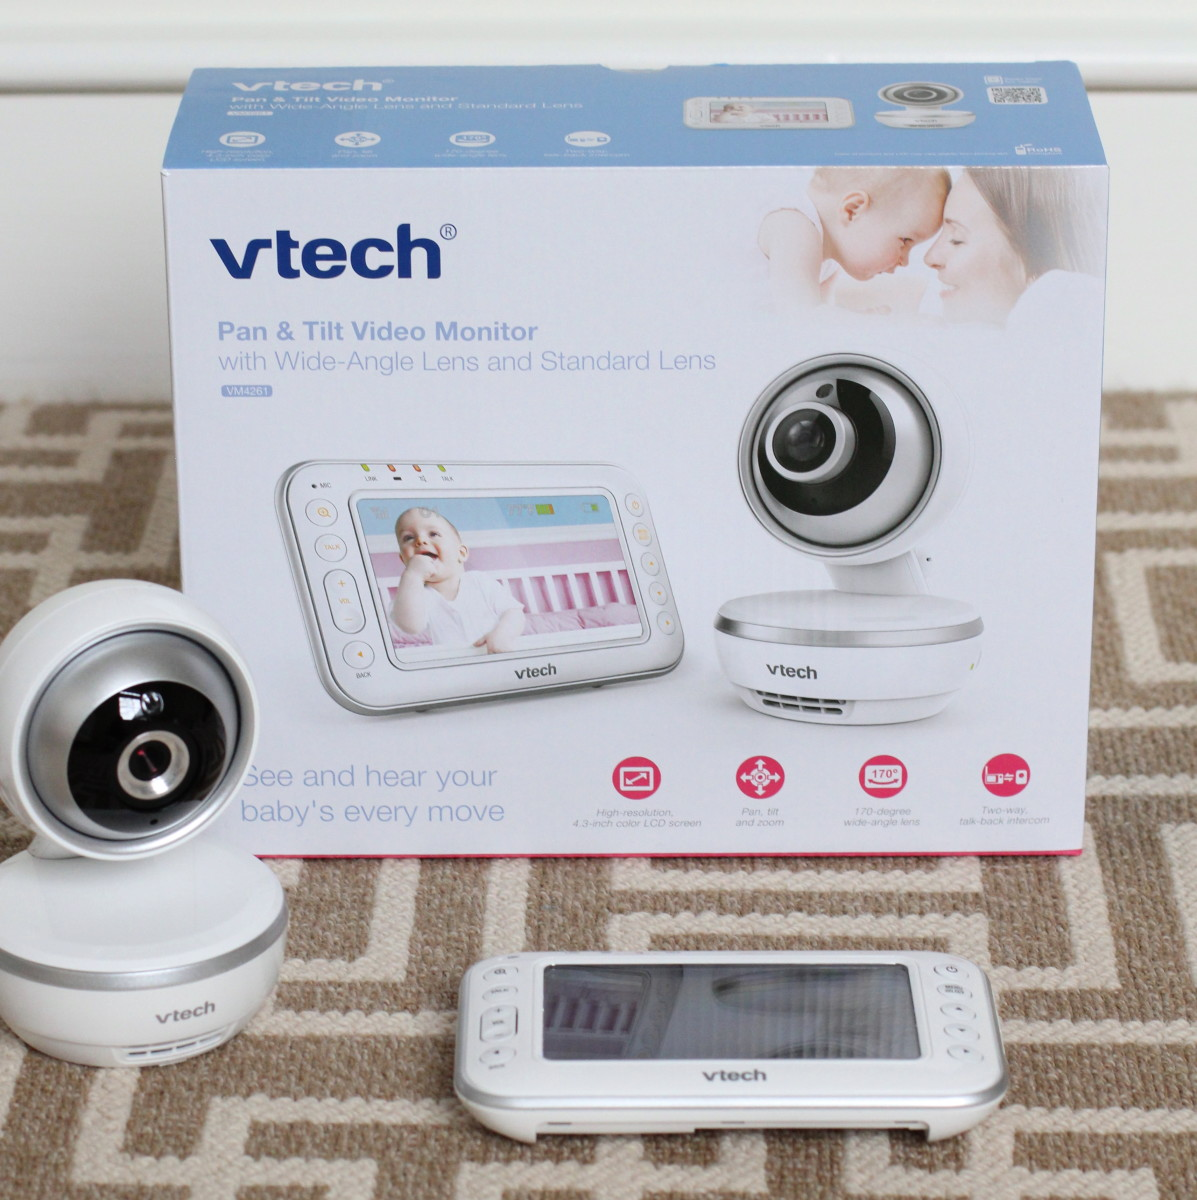 VTech VM4261 Pan & Tilt Video Baby Monitor with Wide- Angle and Standard Lens